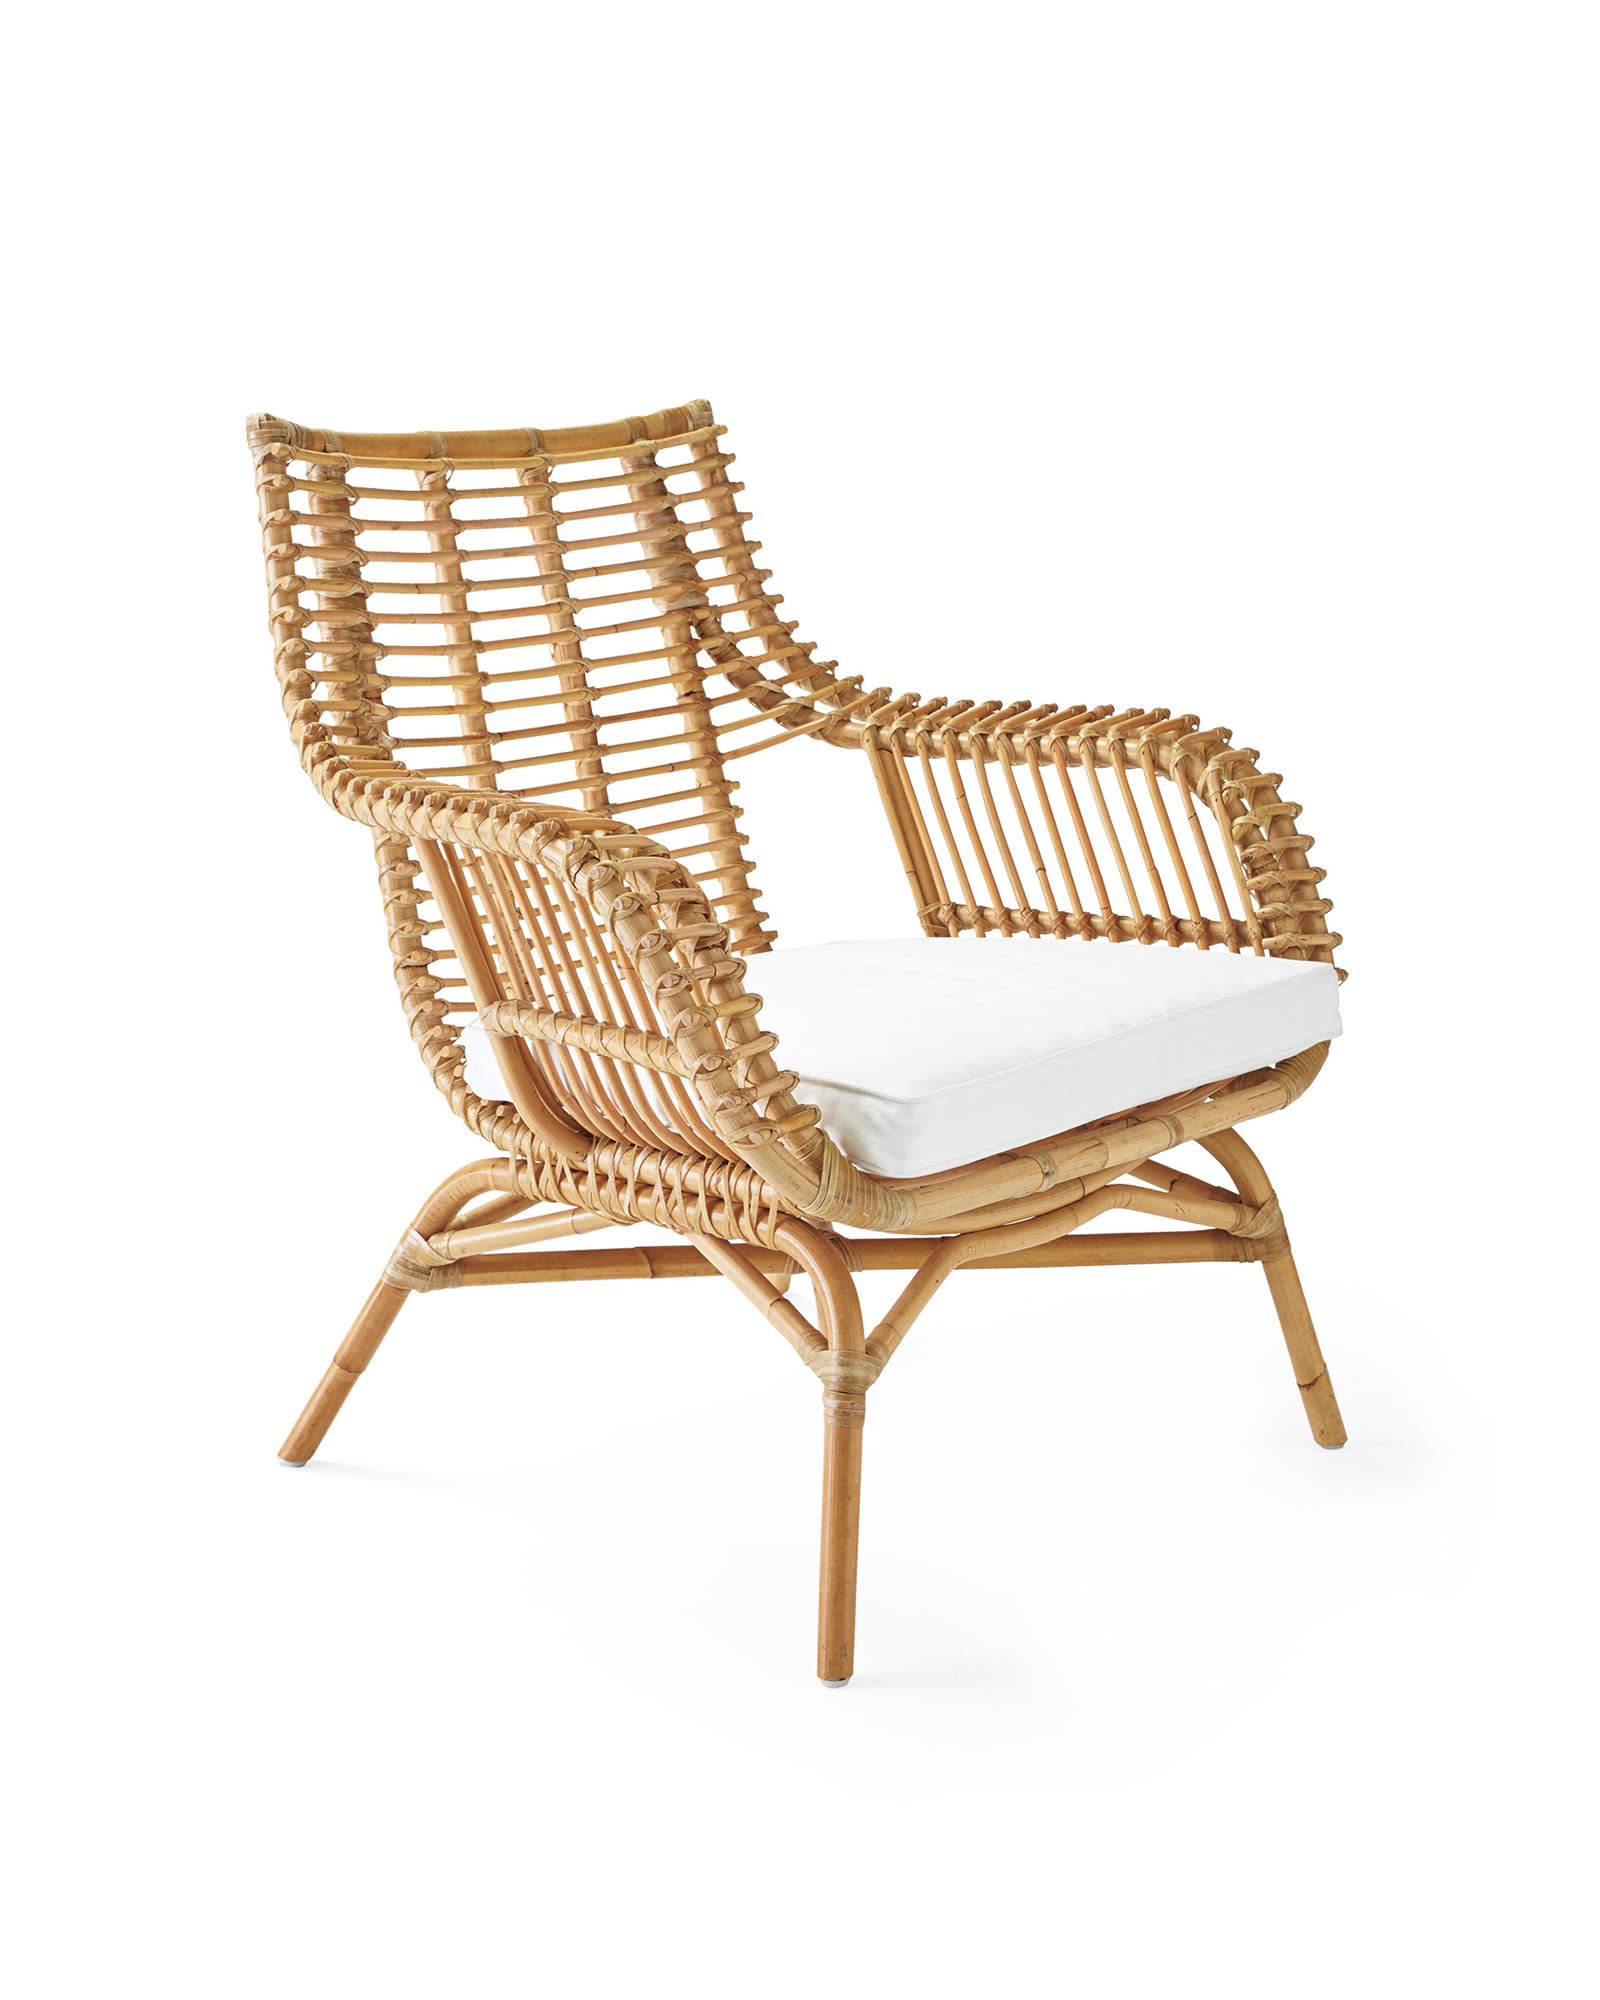 White Rattan Chair Lovely White Rattan Chair Rtty1 Rtty1